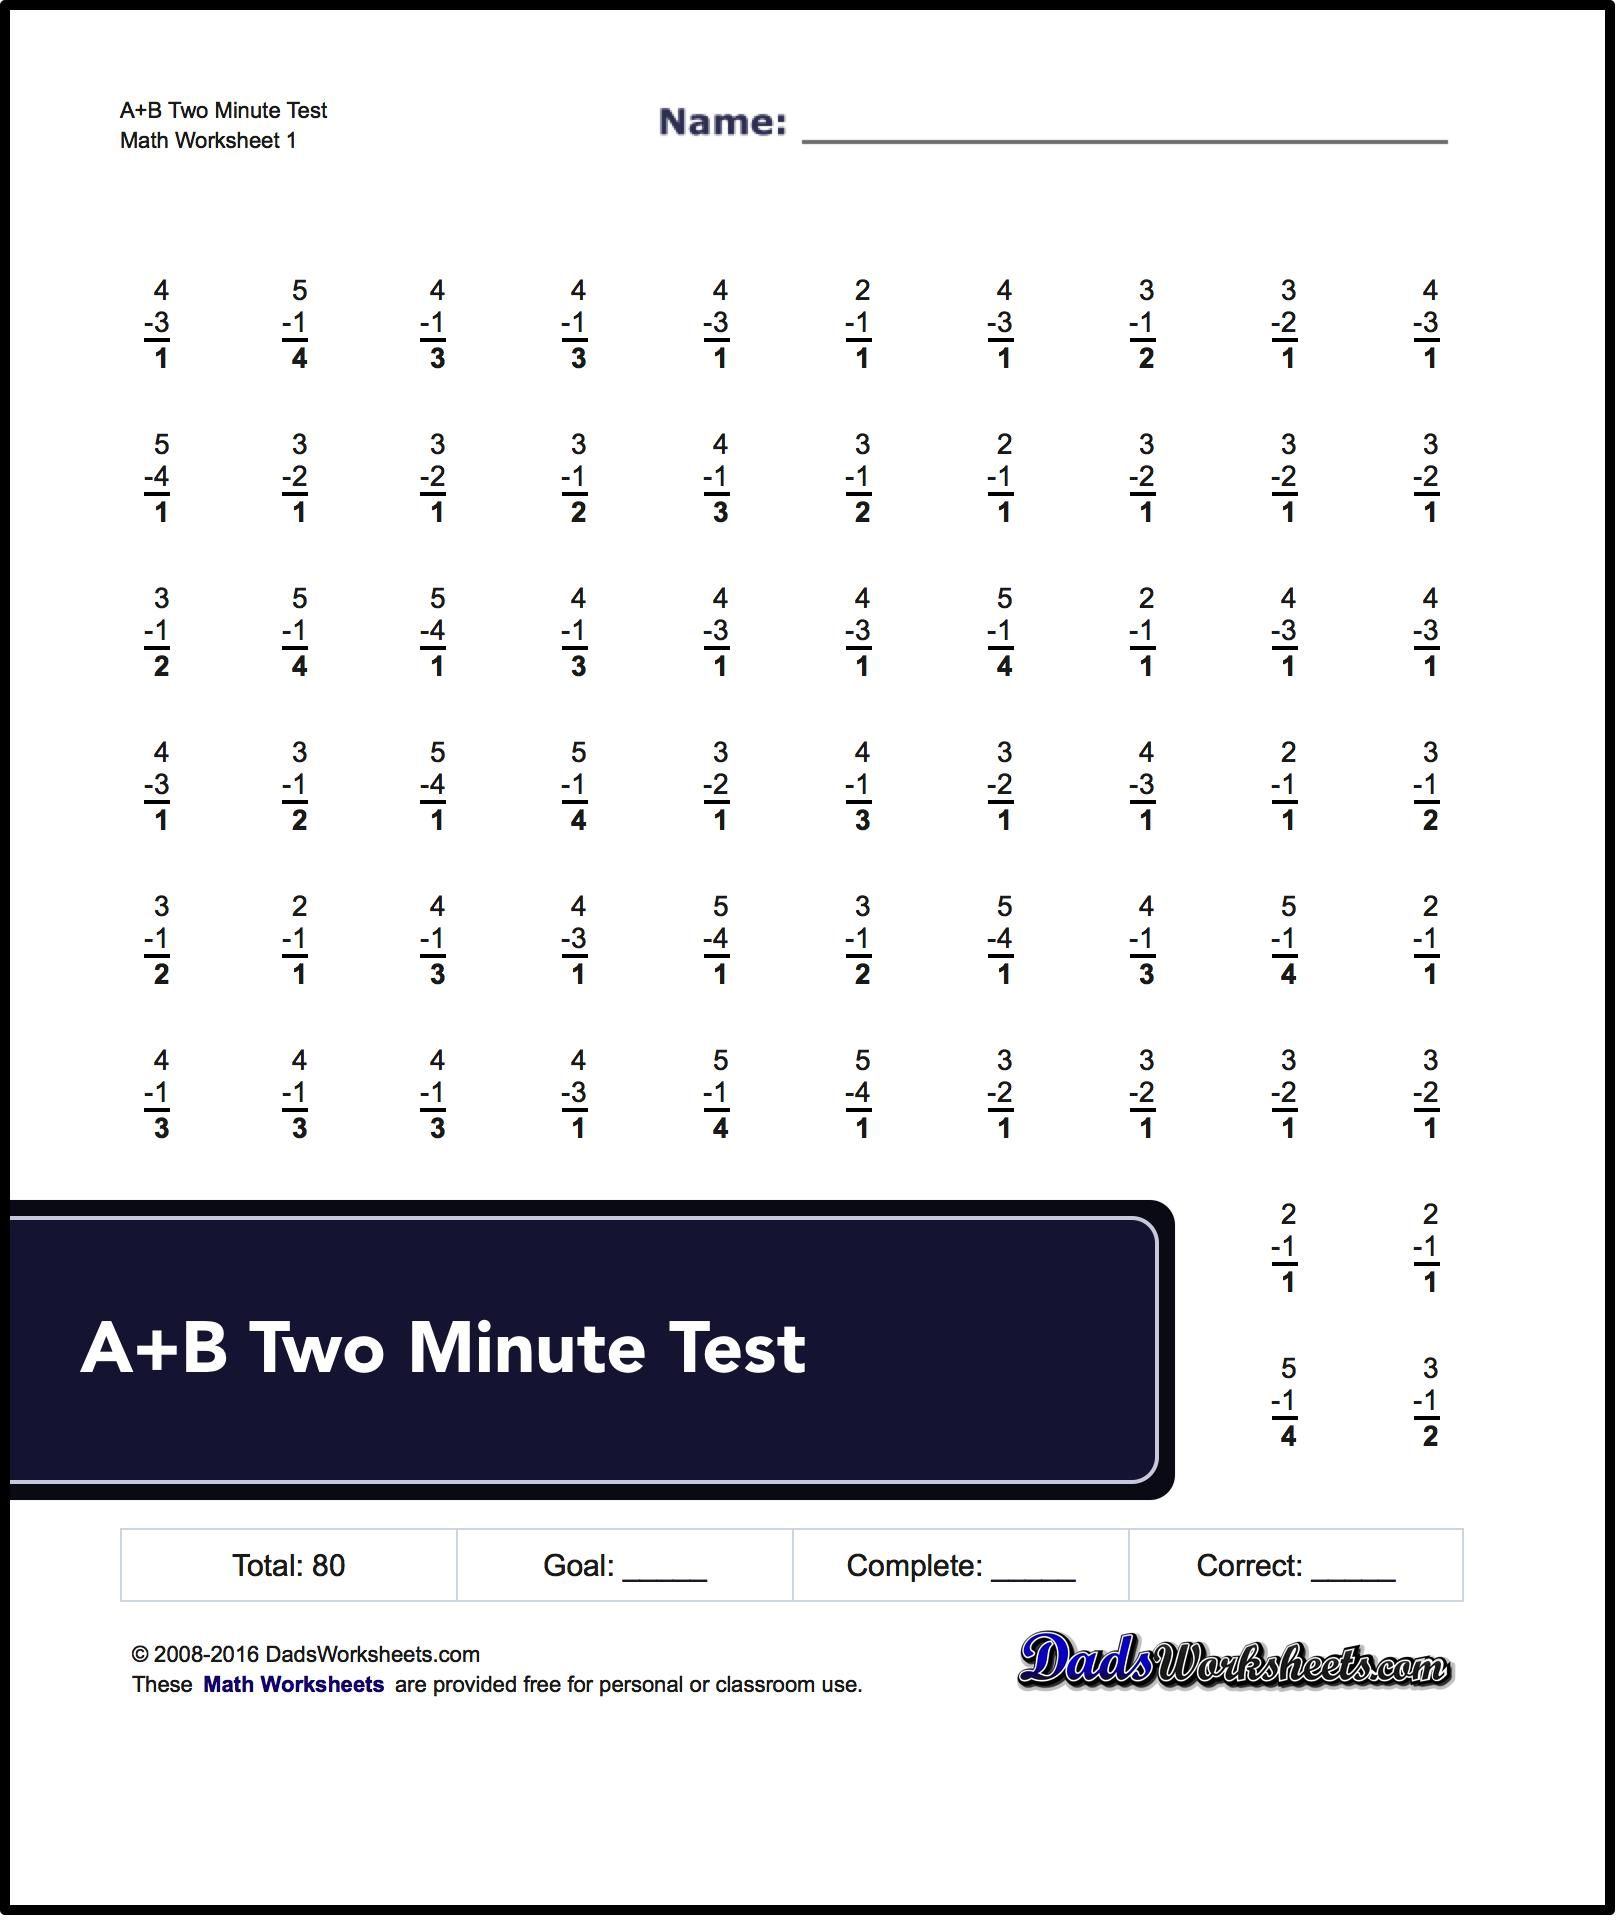 worksheet Addition Worksheets 100 Problems two minute versions of the spaceship math subtraction worksheets with 80 and 100 problems per page